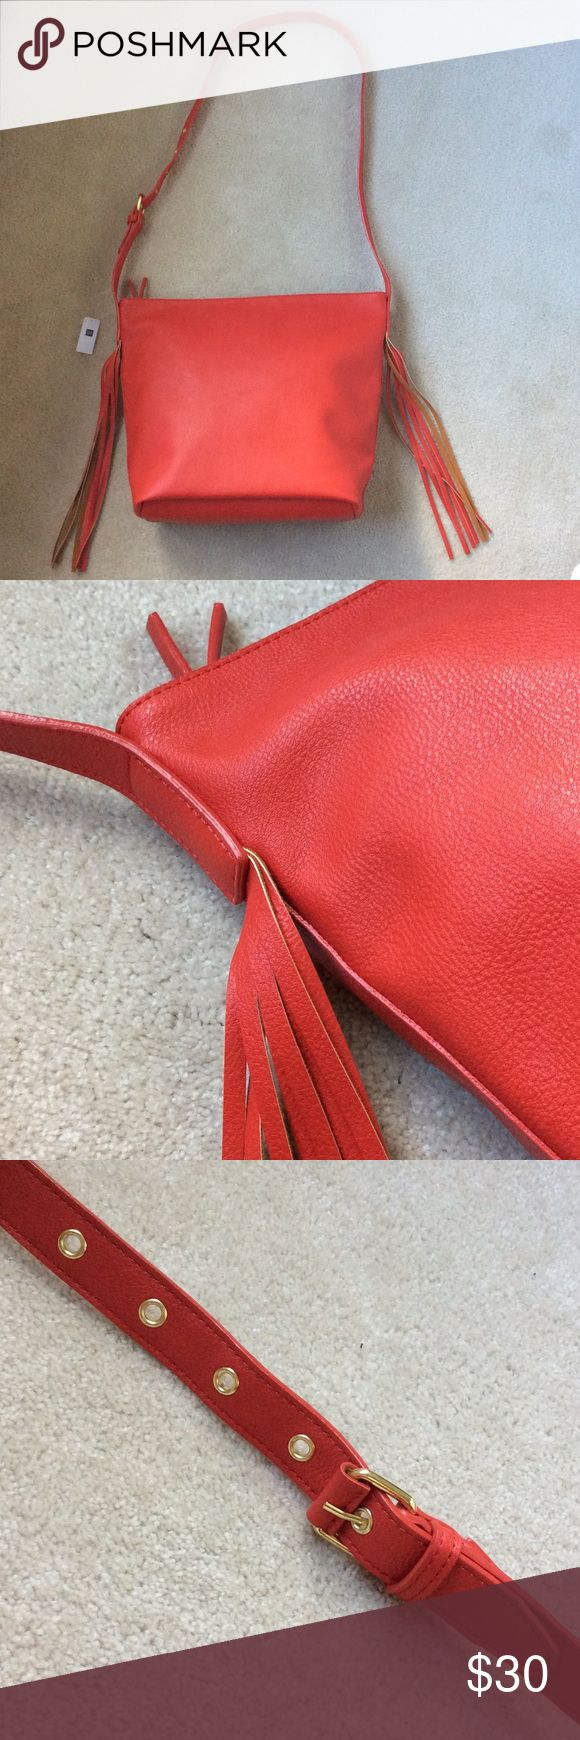 GAP Purse GAP large red purse with zipper and fringe detail. Gold hardware. One interior zippered pocket. Fake leather. GAP Bags